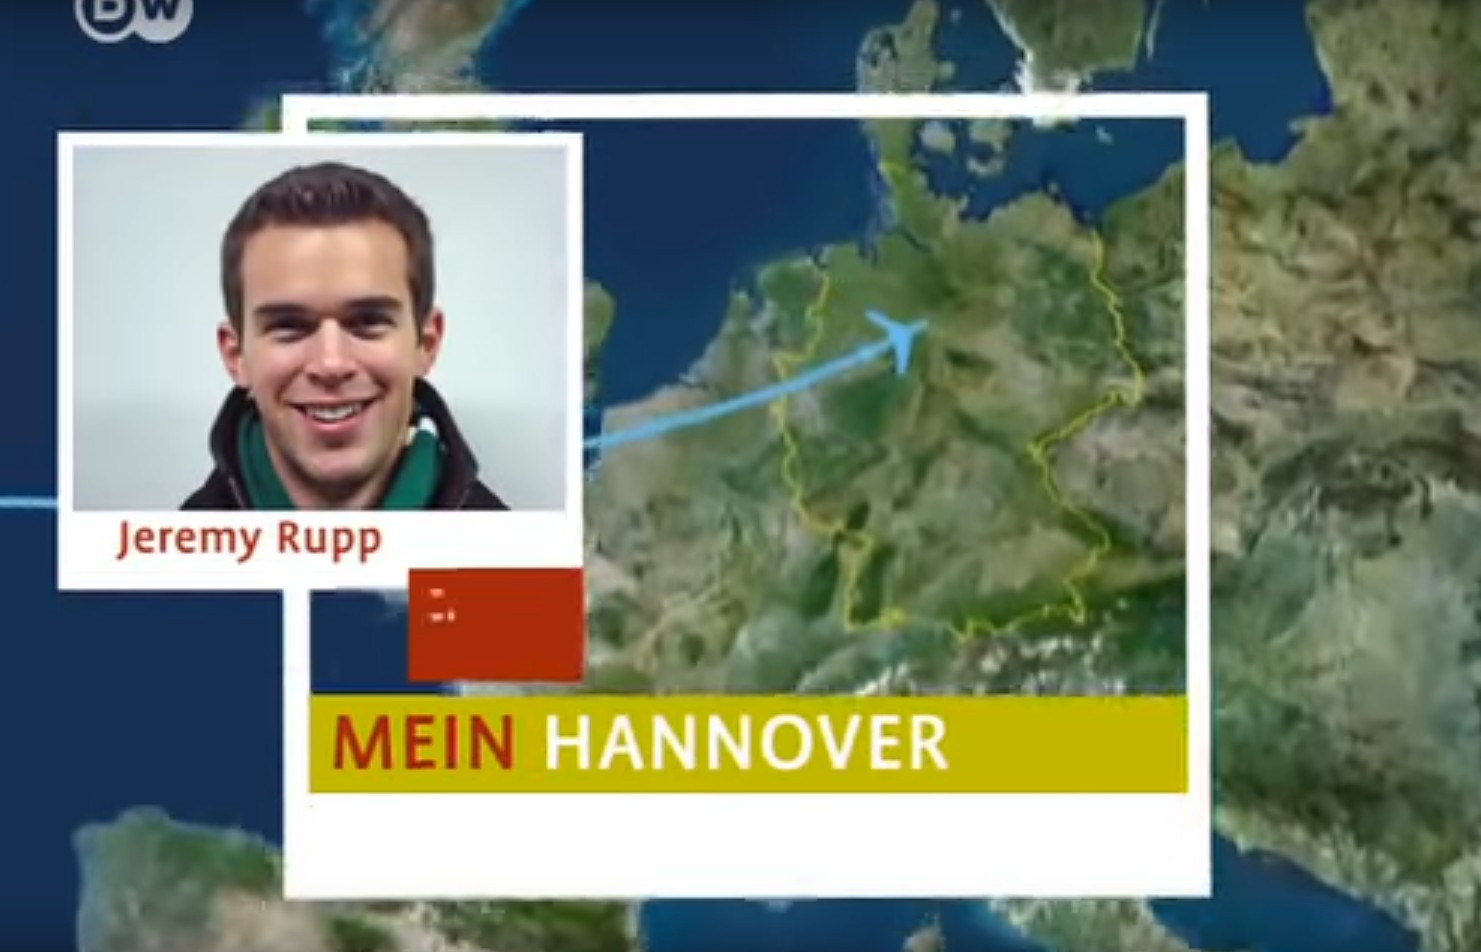 Mein Hannover